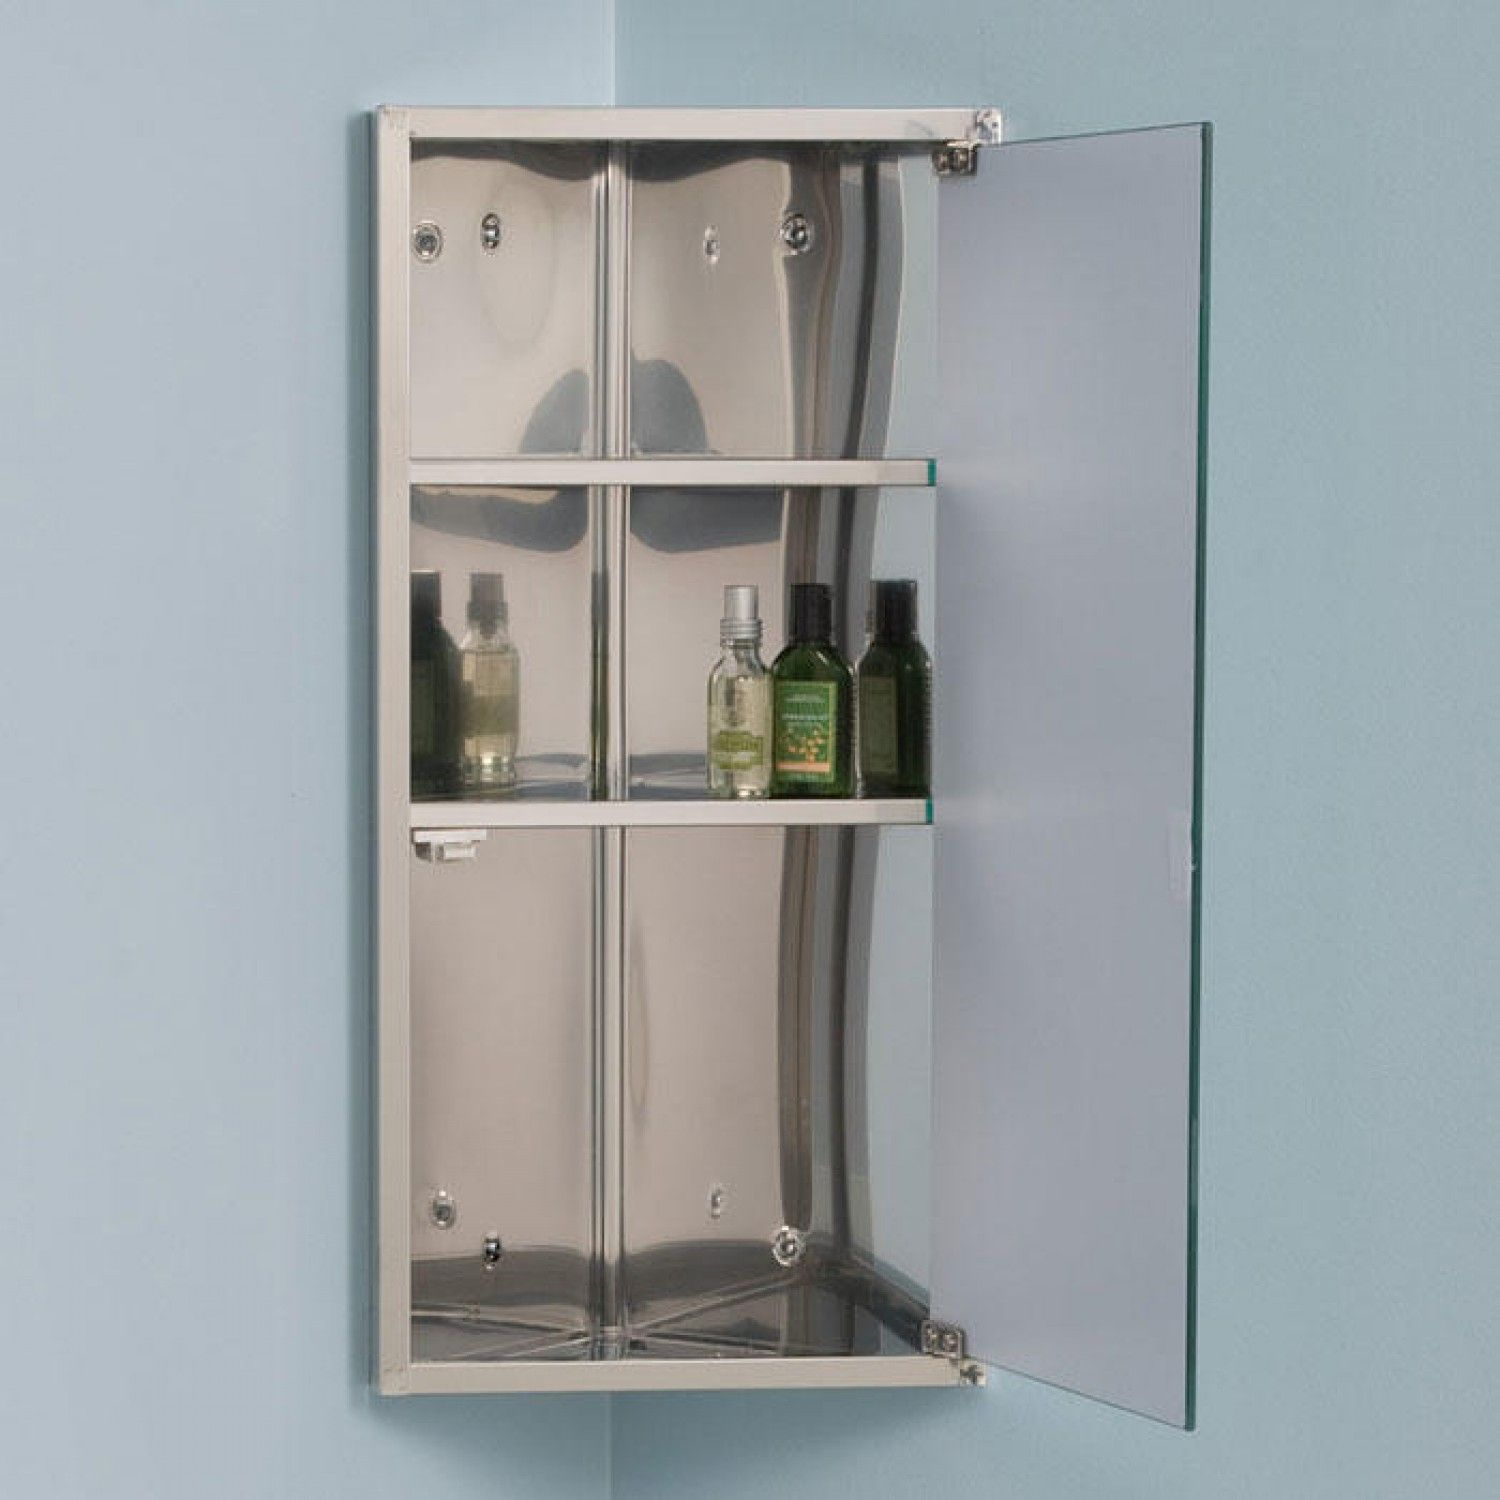 corner bathroom medicine cabinet mirrors | ideas | Pinterest ...